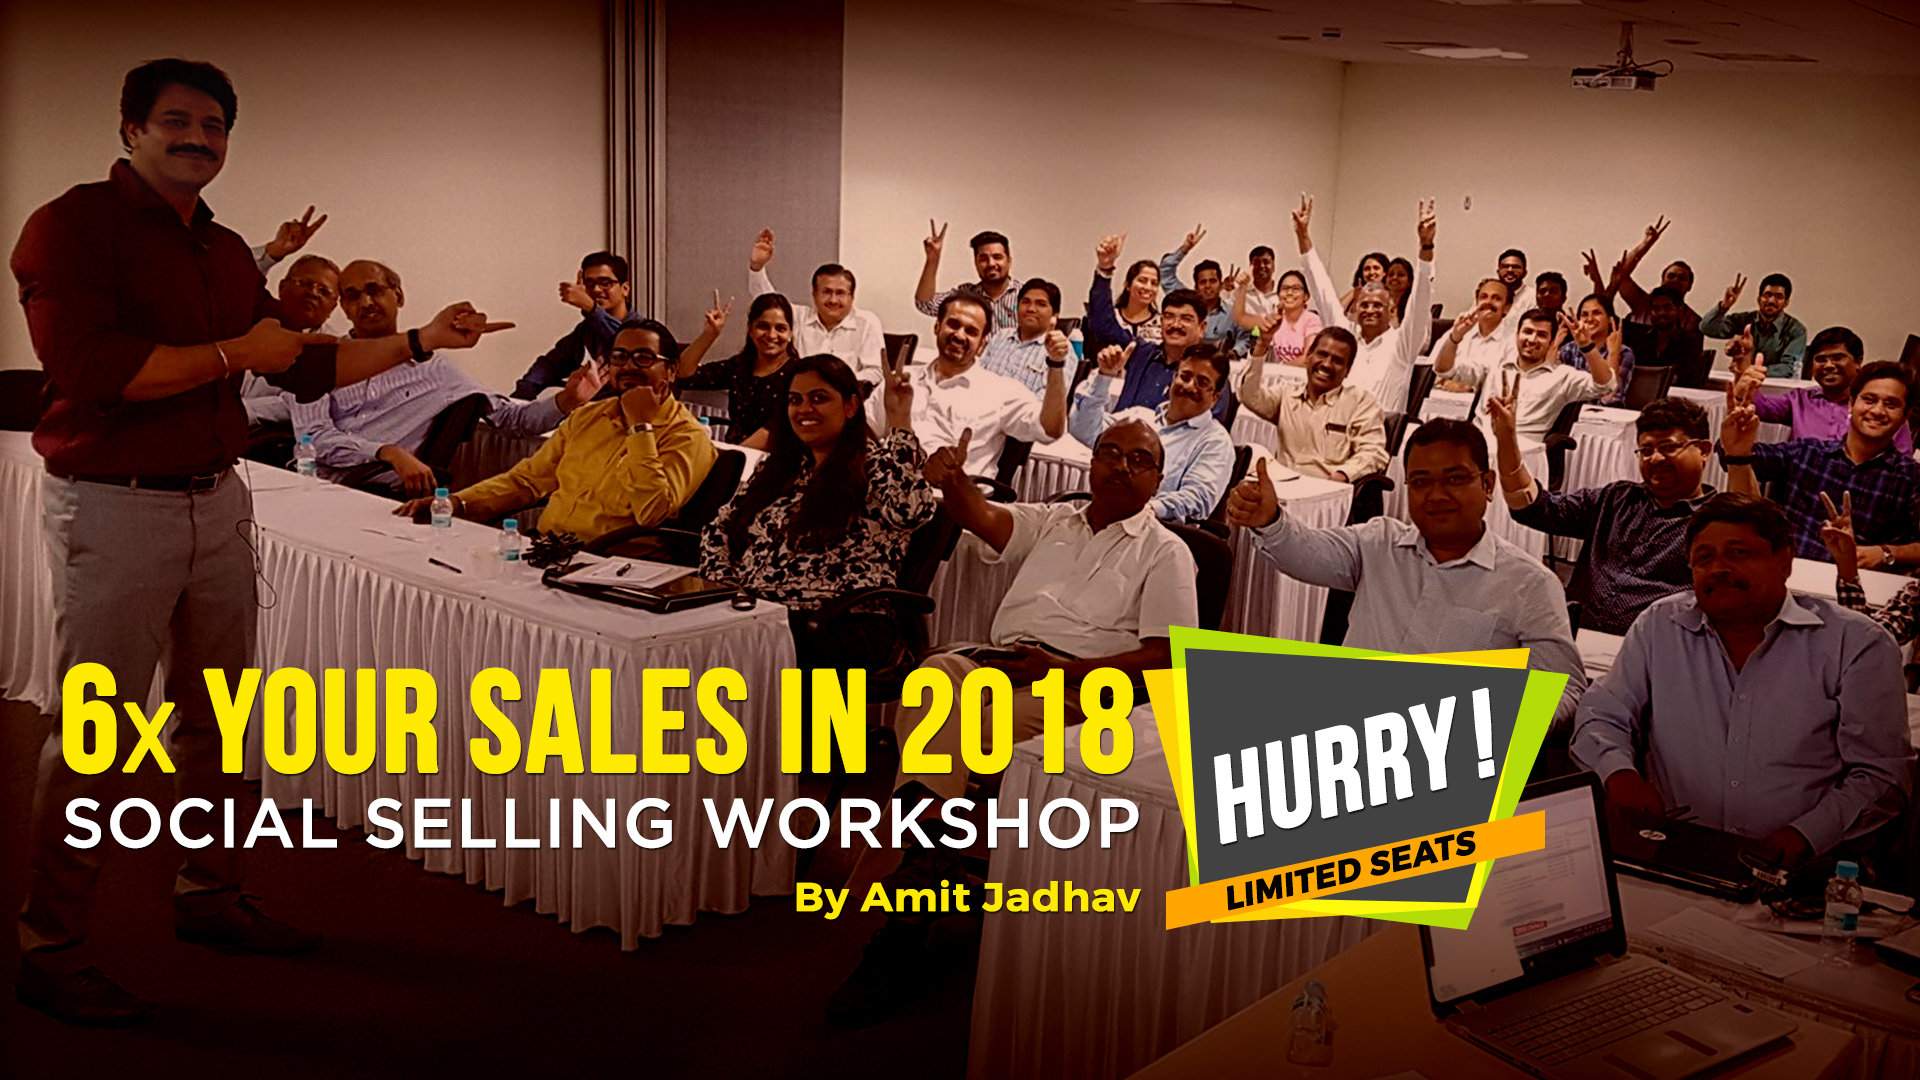 Social Selling Workshop By Amit Jadhav, Pune, Maharashtra, India